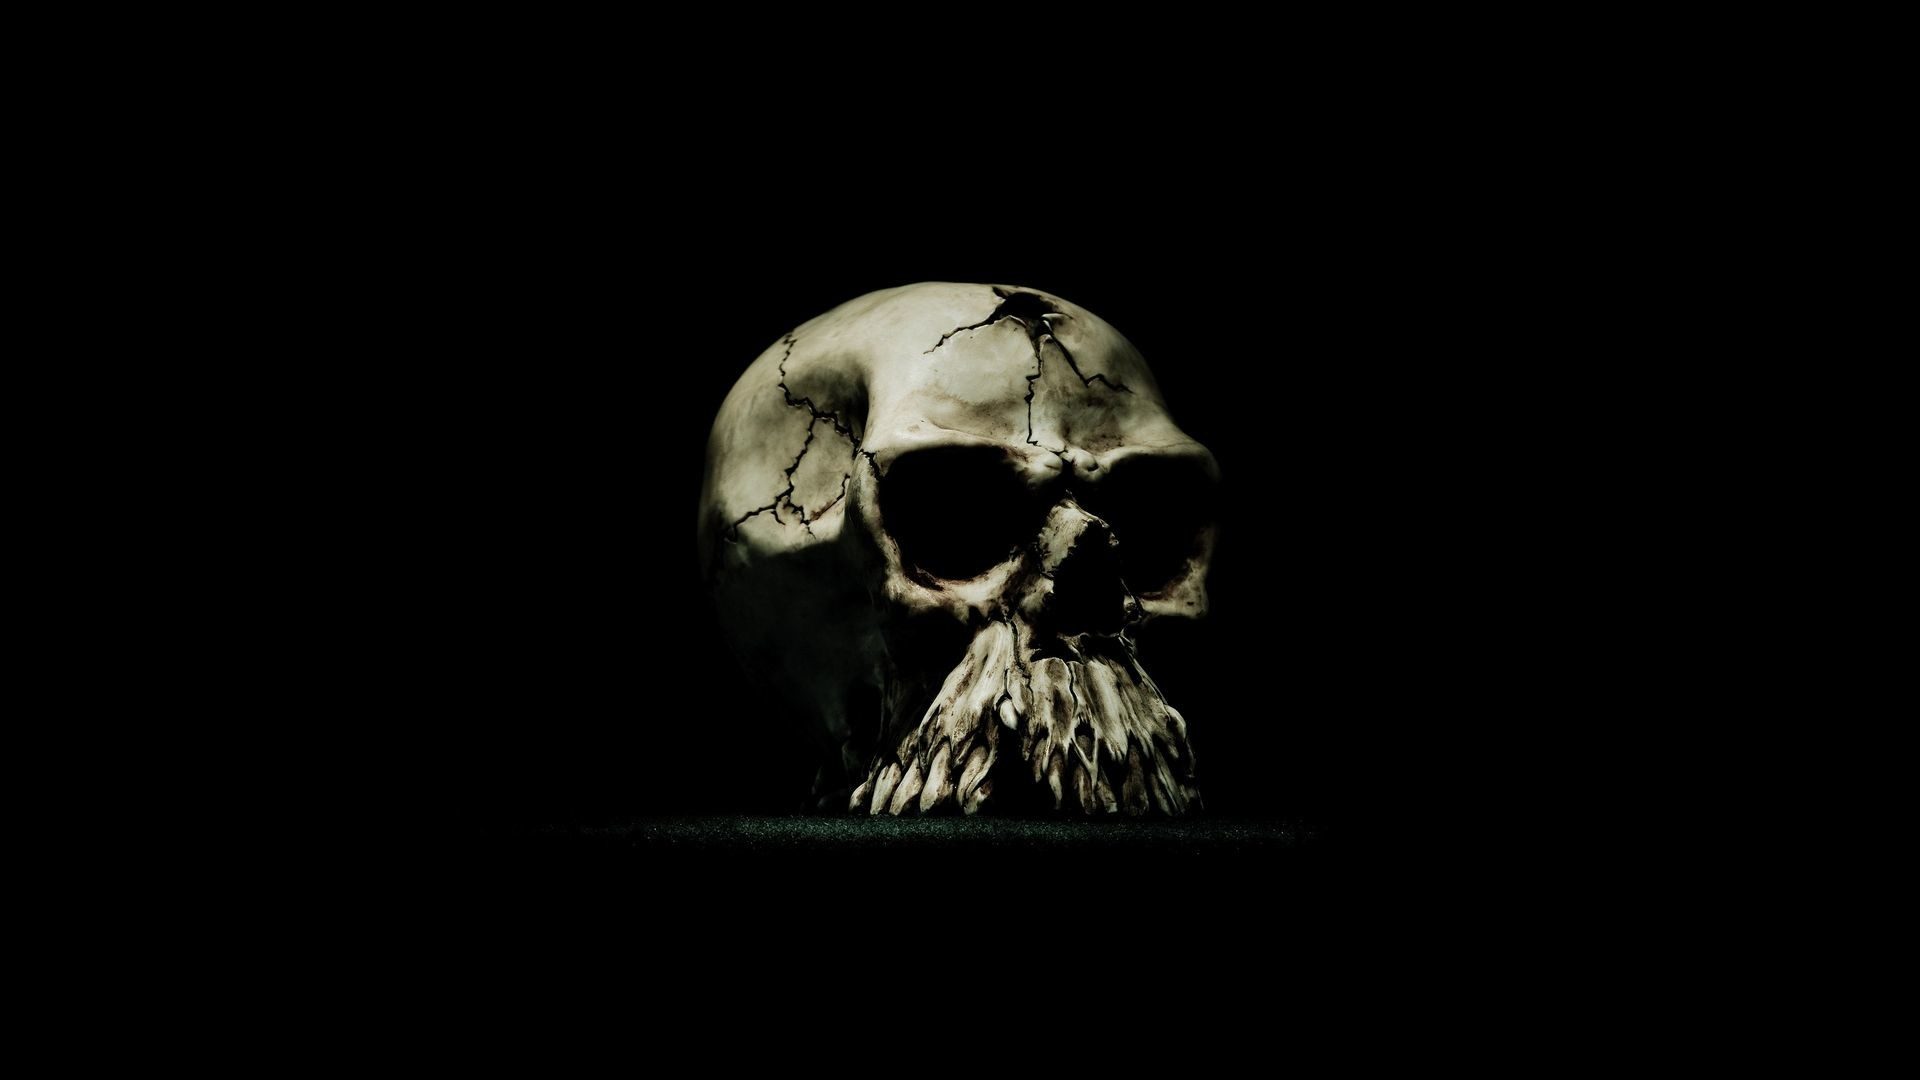 Top Skull Scary Wallpapers Images for Pinterest